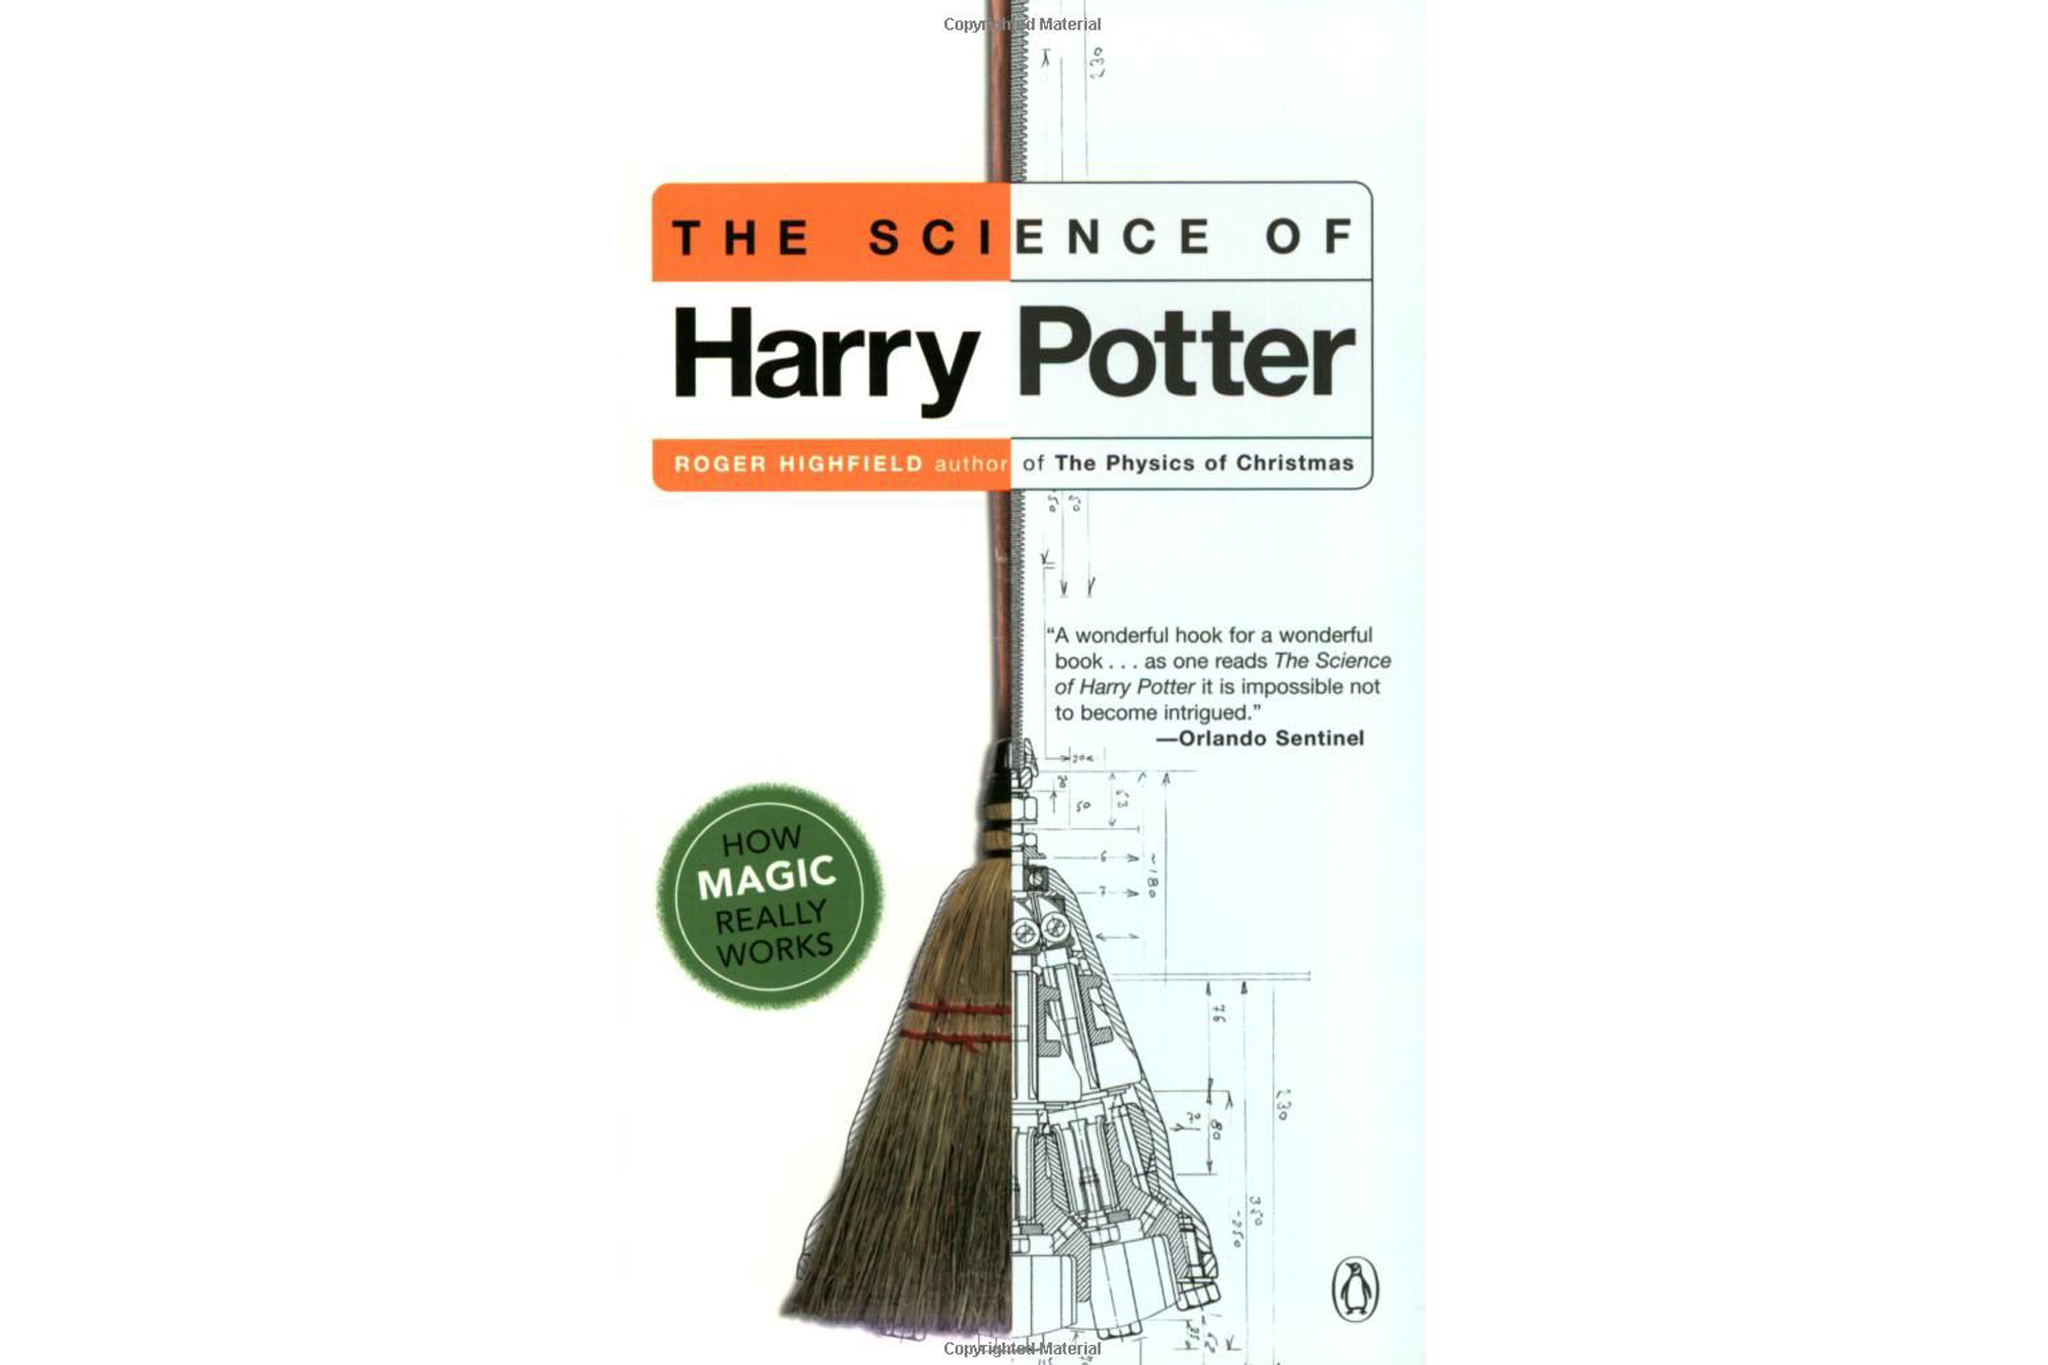 The Science of Harry Potter: How Magic Really Works by Roger Hig